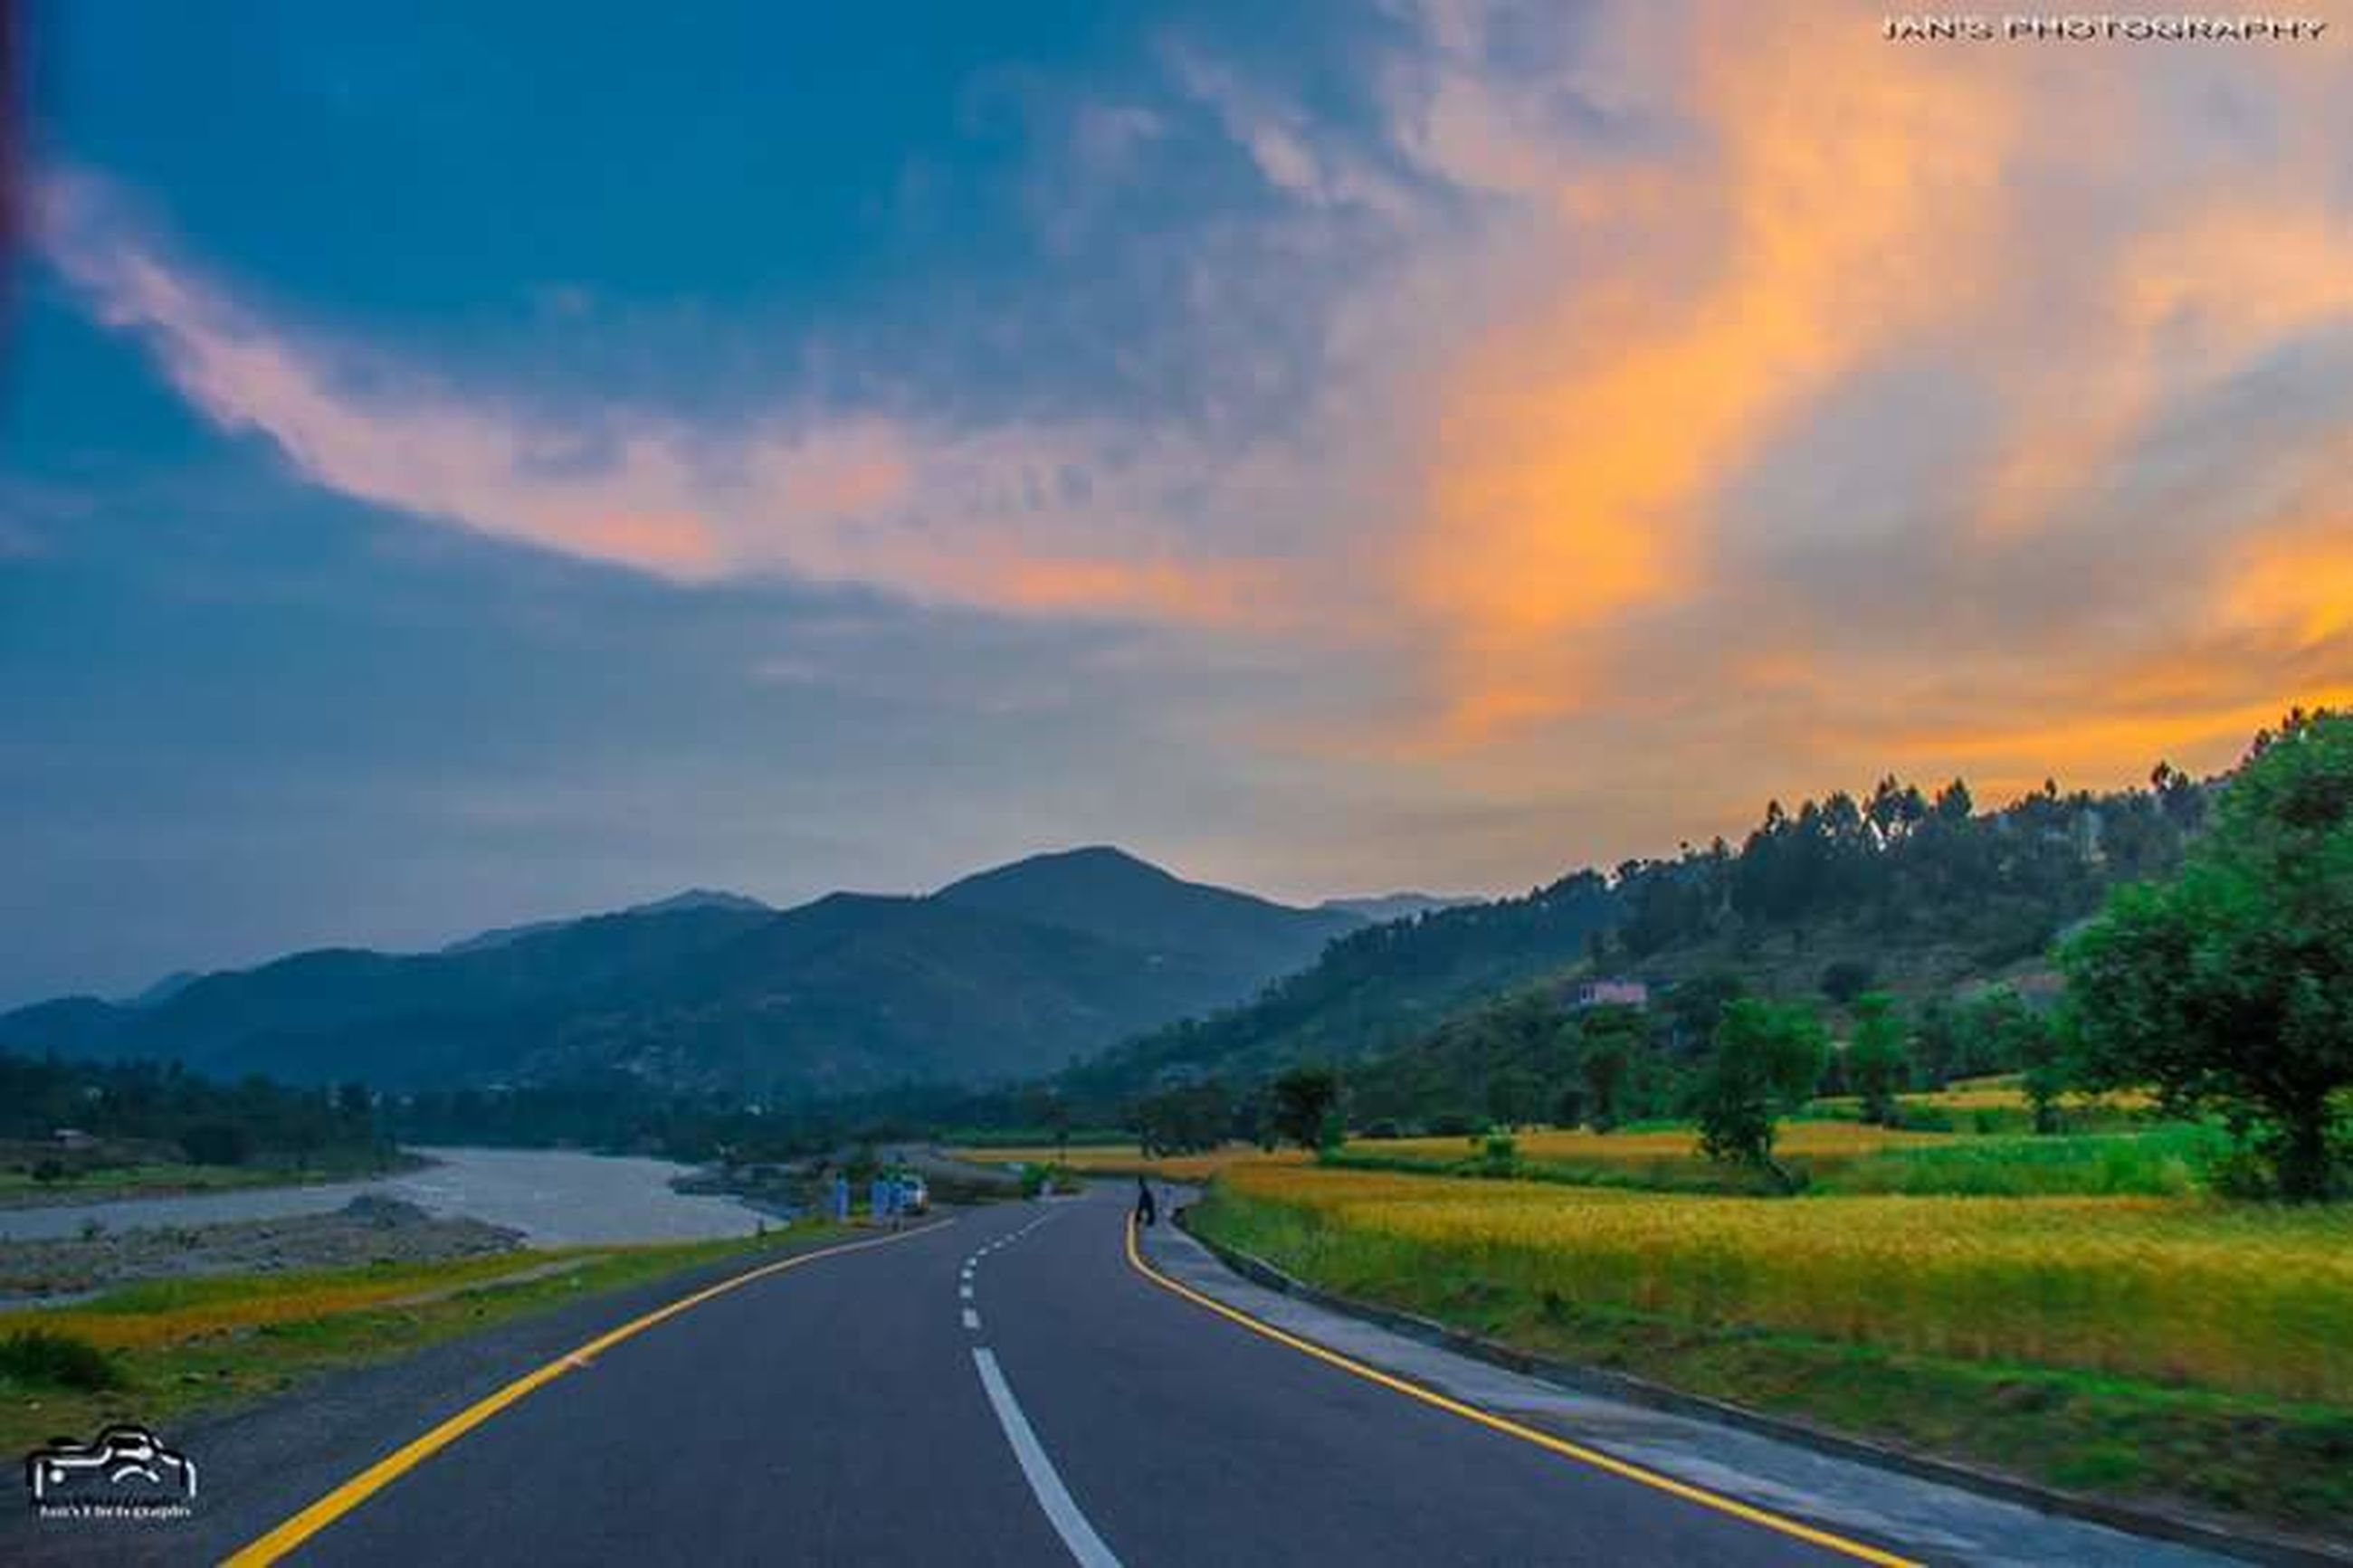 road, mountain, transportation, sky, the way forward, cloud - sky, landscape, mountain range, country road, road marking, scenics, tranquil scene, beauty in nature, tranquility, sunset, nature, diminishing perspective, cloud, car, vanishing point